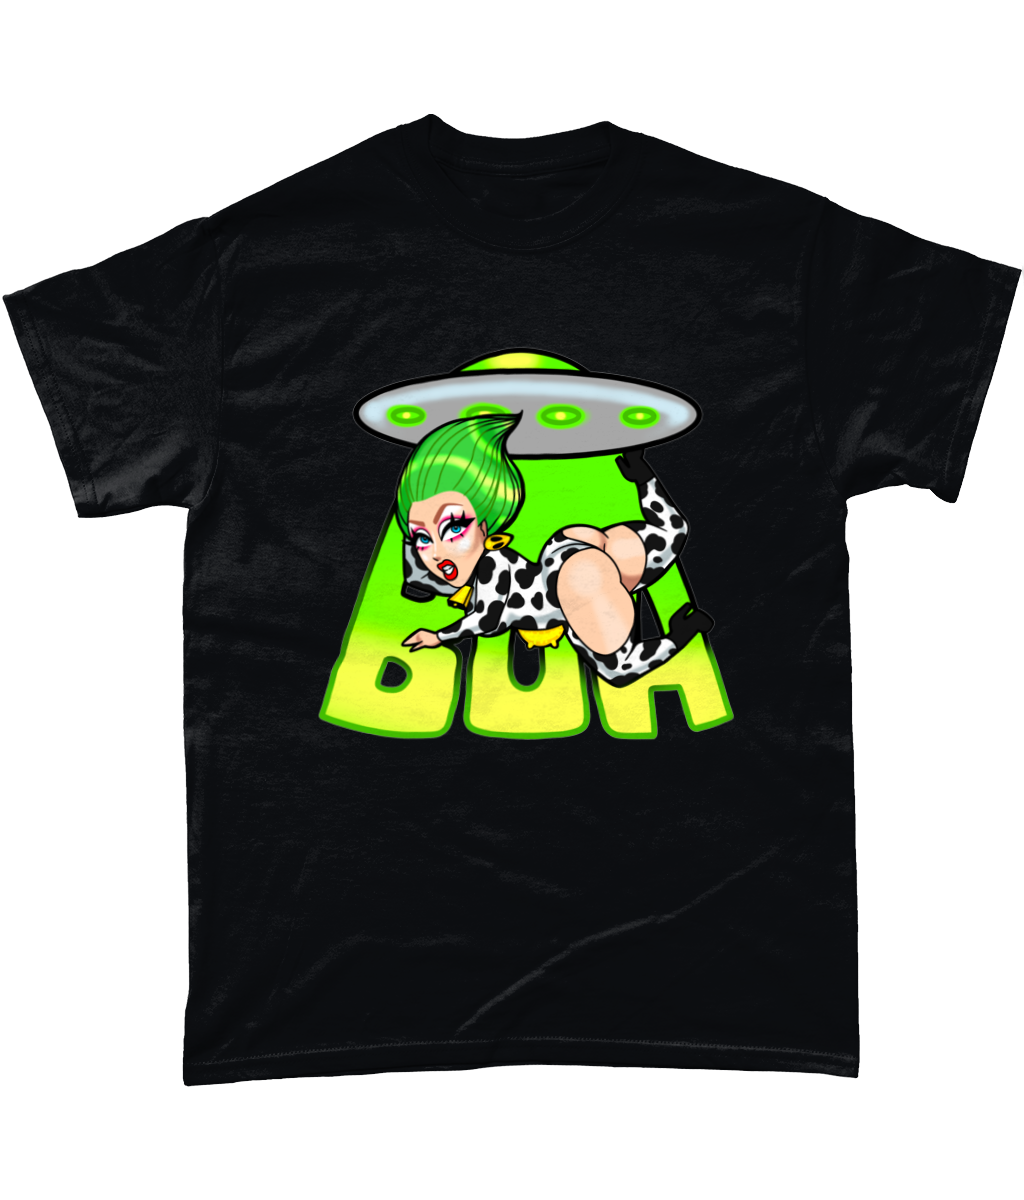 BOA - Beam Me Up T-shirt - SNATCHED MERCH